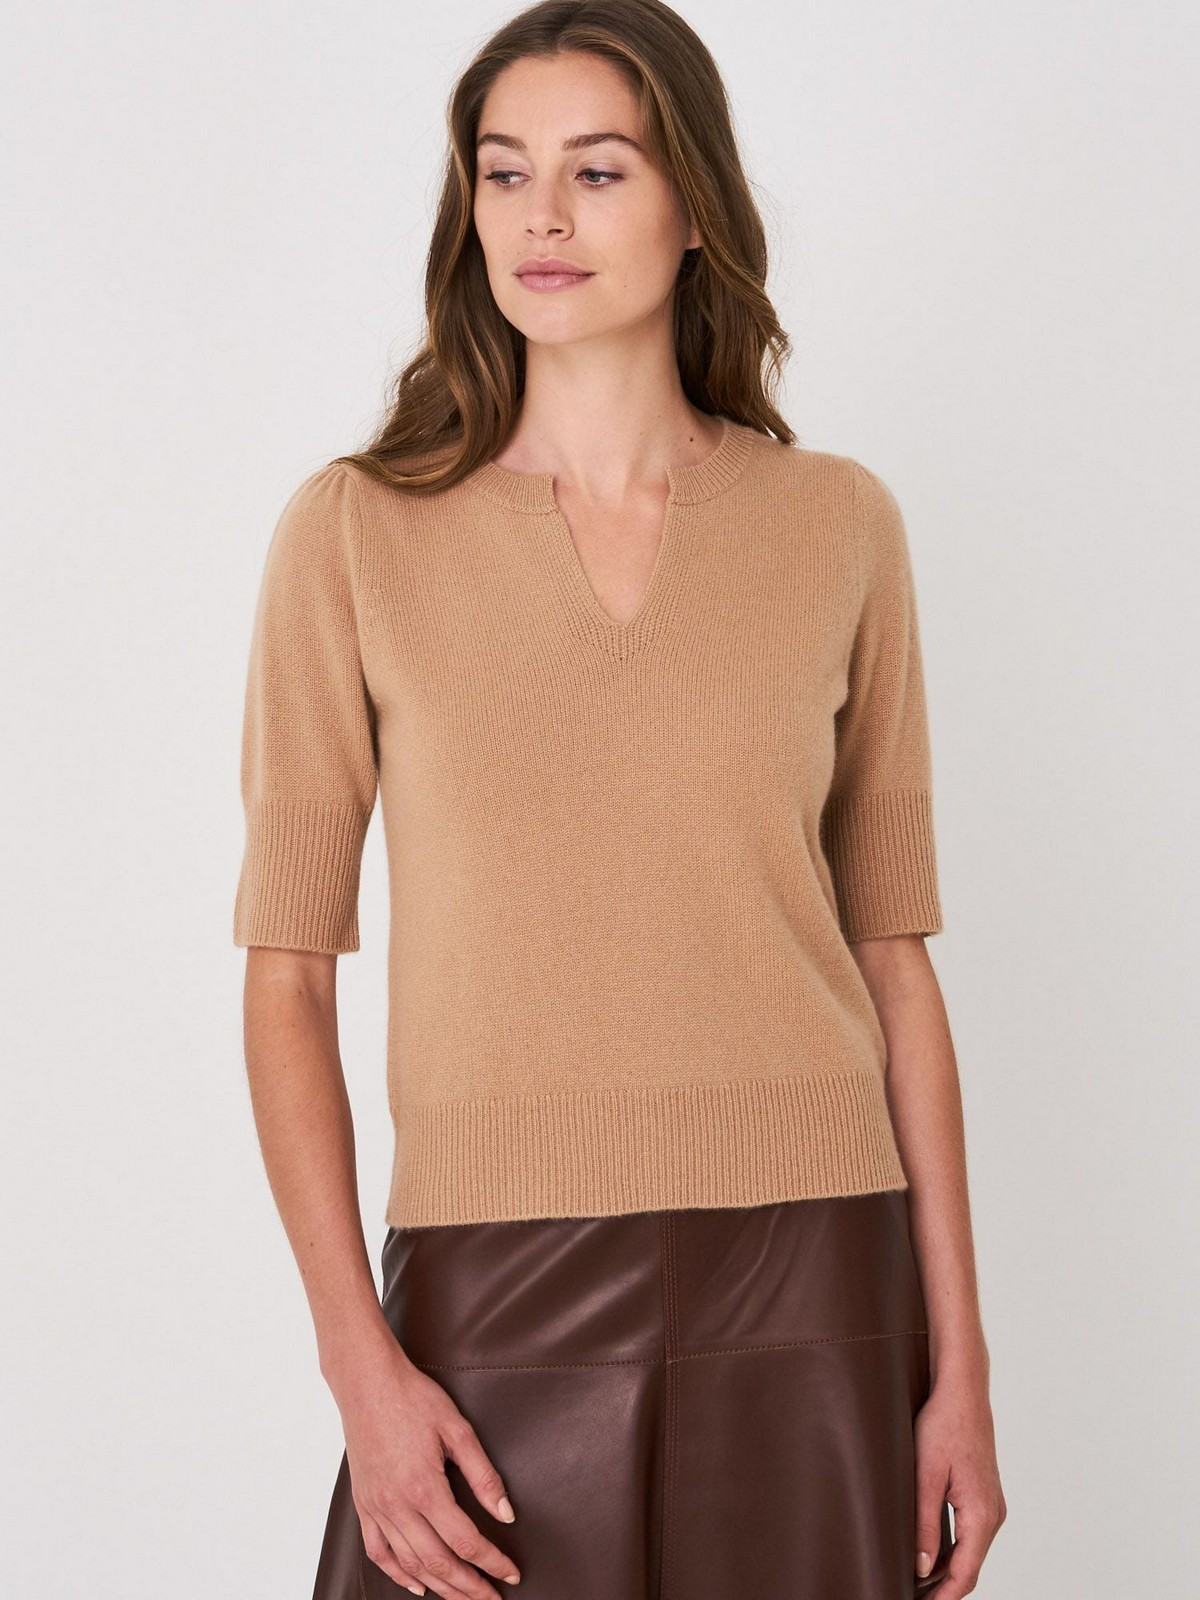 Repeat - 100439 - Pull V cashmere